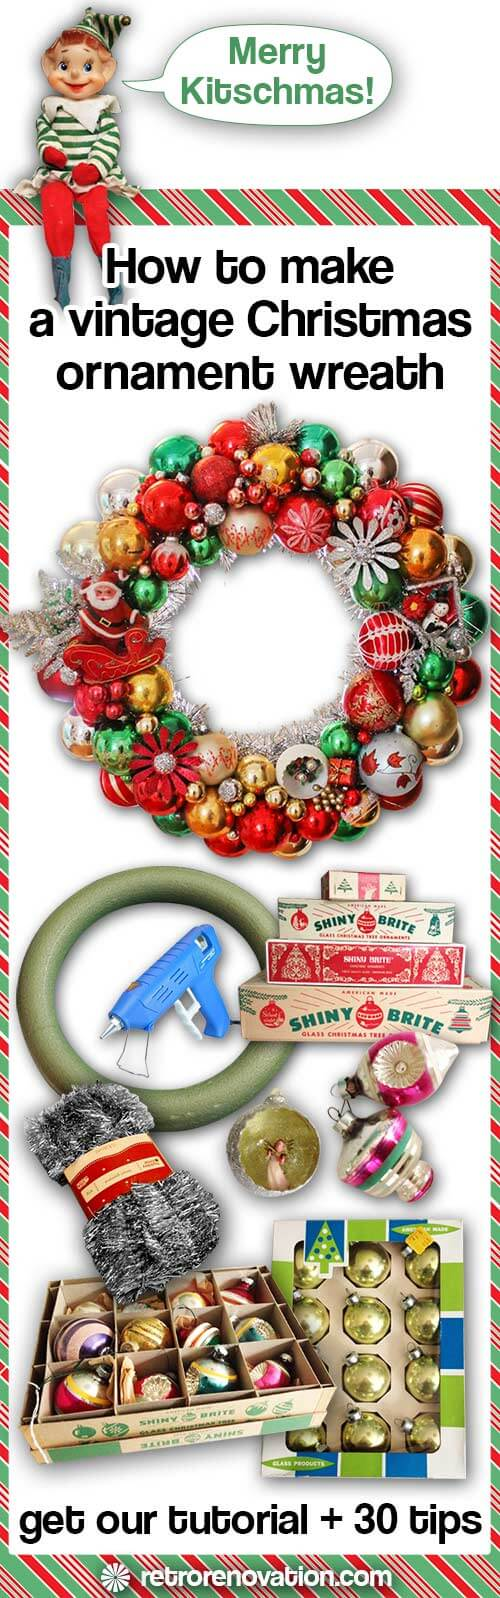 Peachy Our Tutorial And 30 Tips To Make Your Own Vintage Christmas Easy Diy Christmas Decorations Tissureus